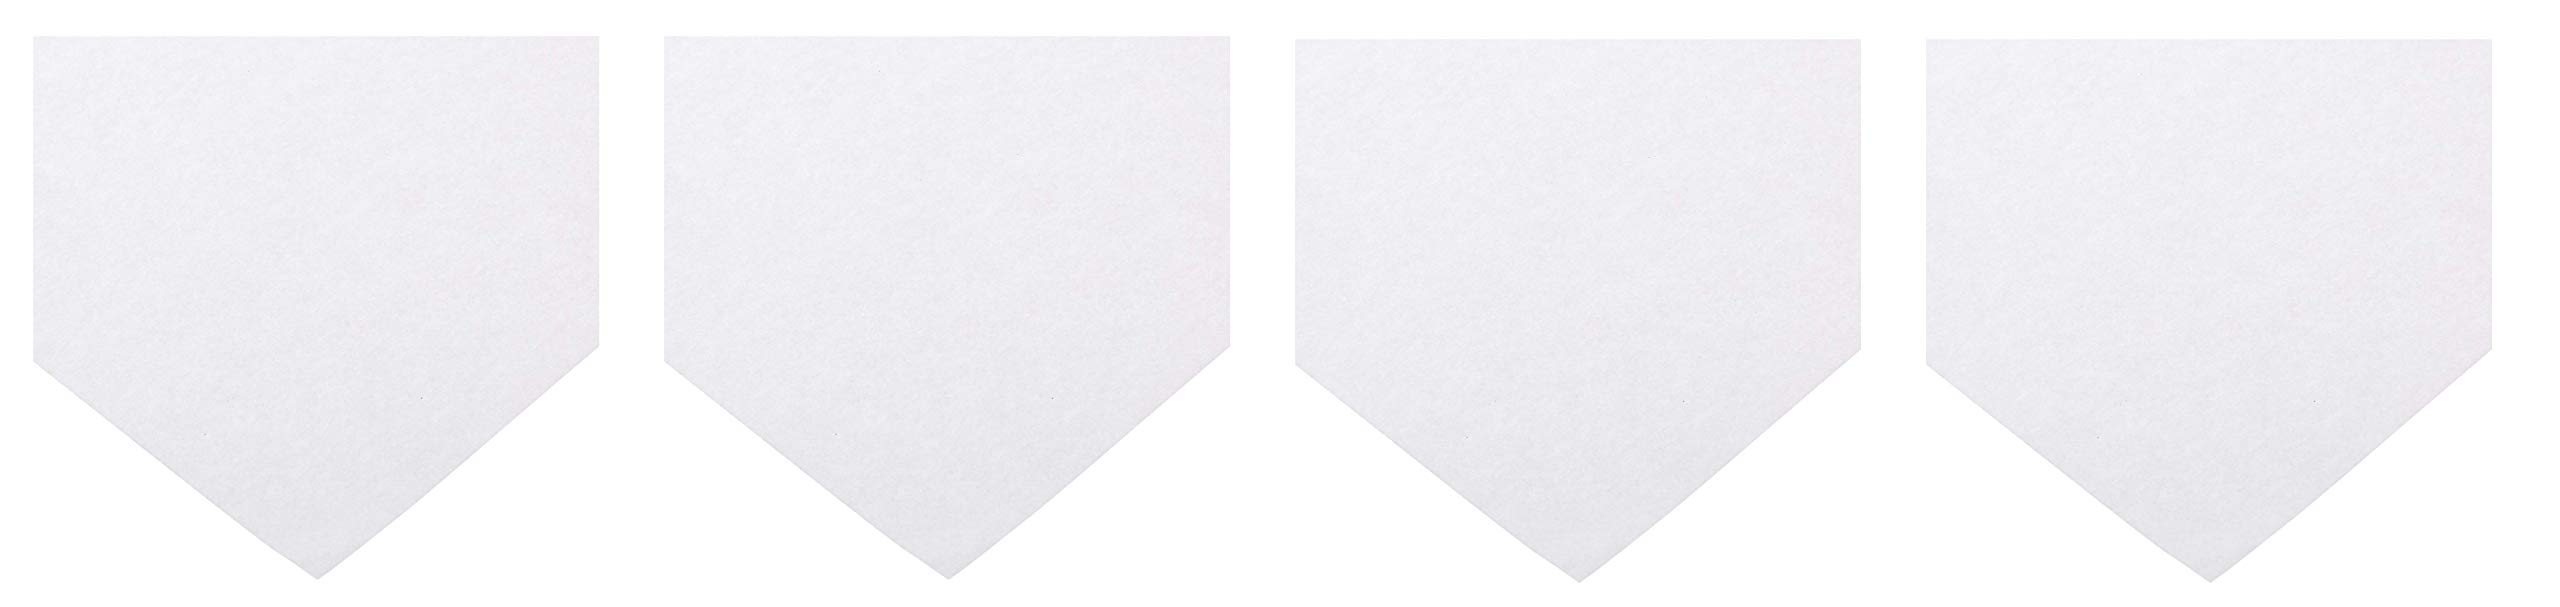 Sax Sulphite Drawing Paper, 90 lb, 9 x 12 Inches, Extra-White, Pack of 500 (4-Pack)